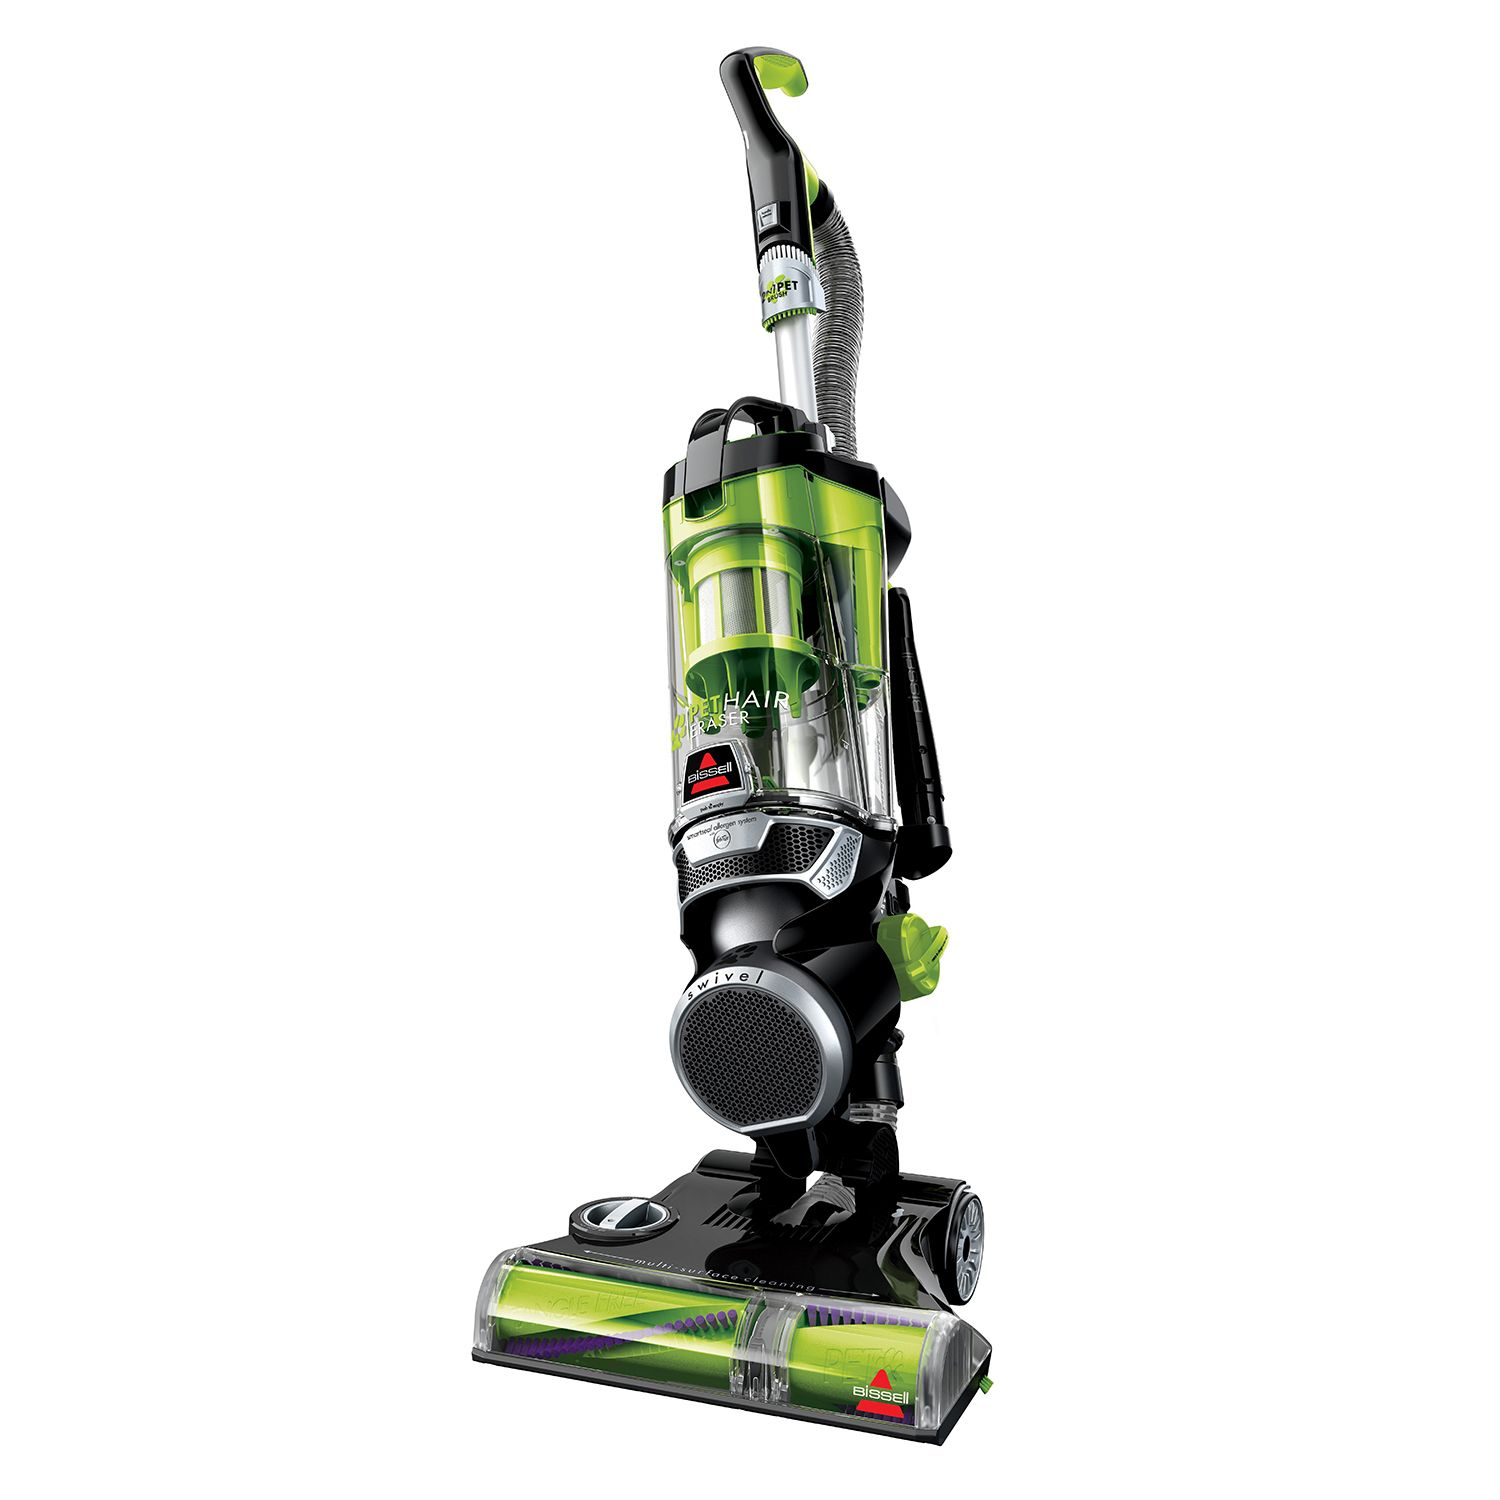 bissell pet hair eraser bagless upright vacuum - Bissell Sweeper